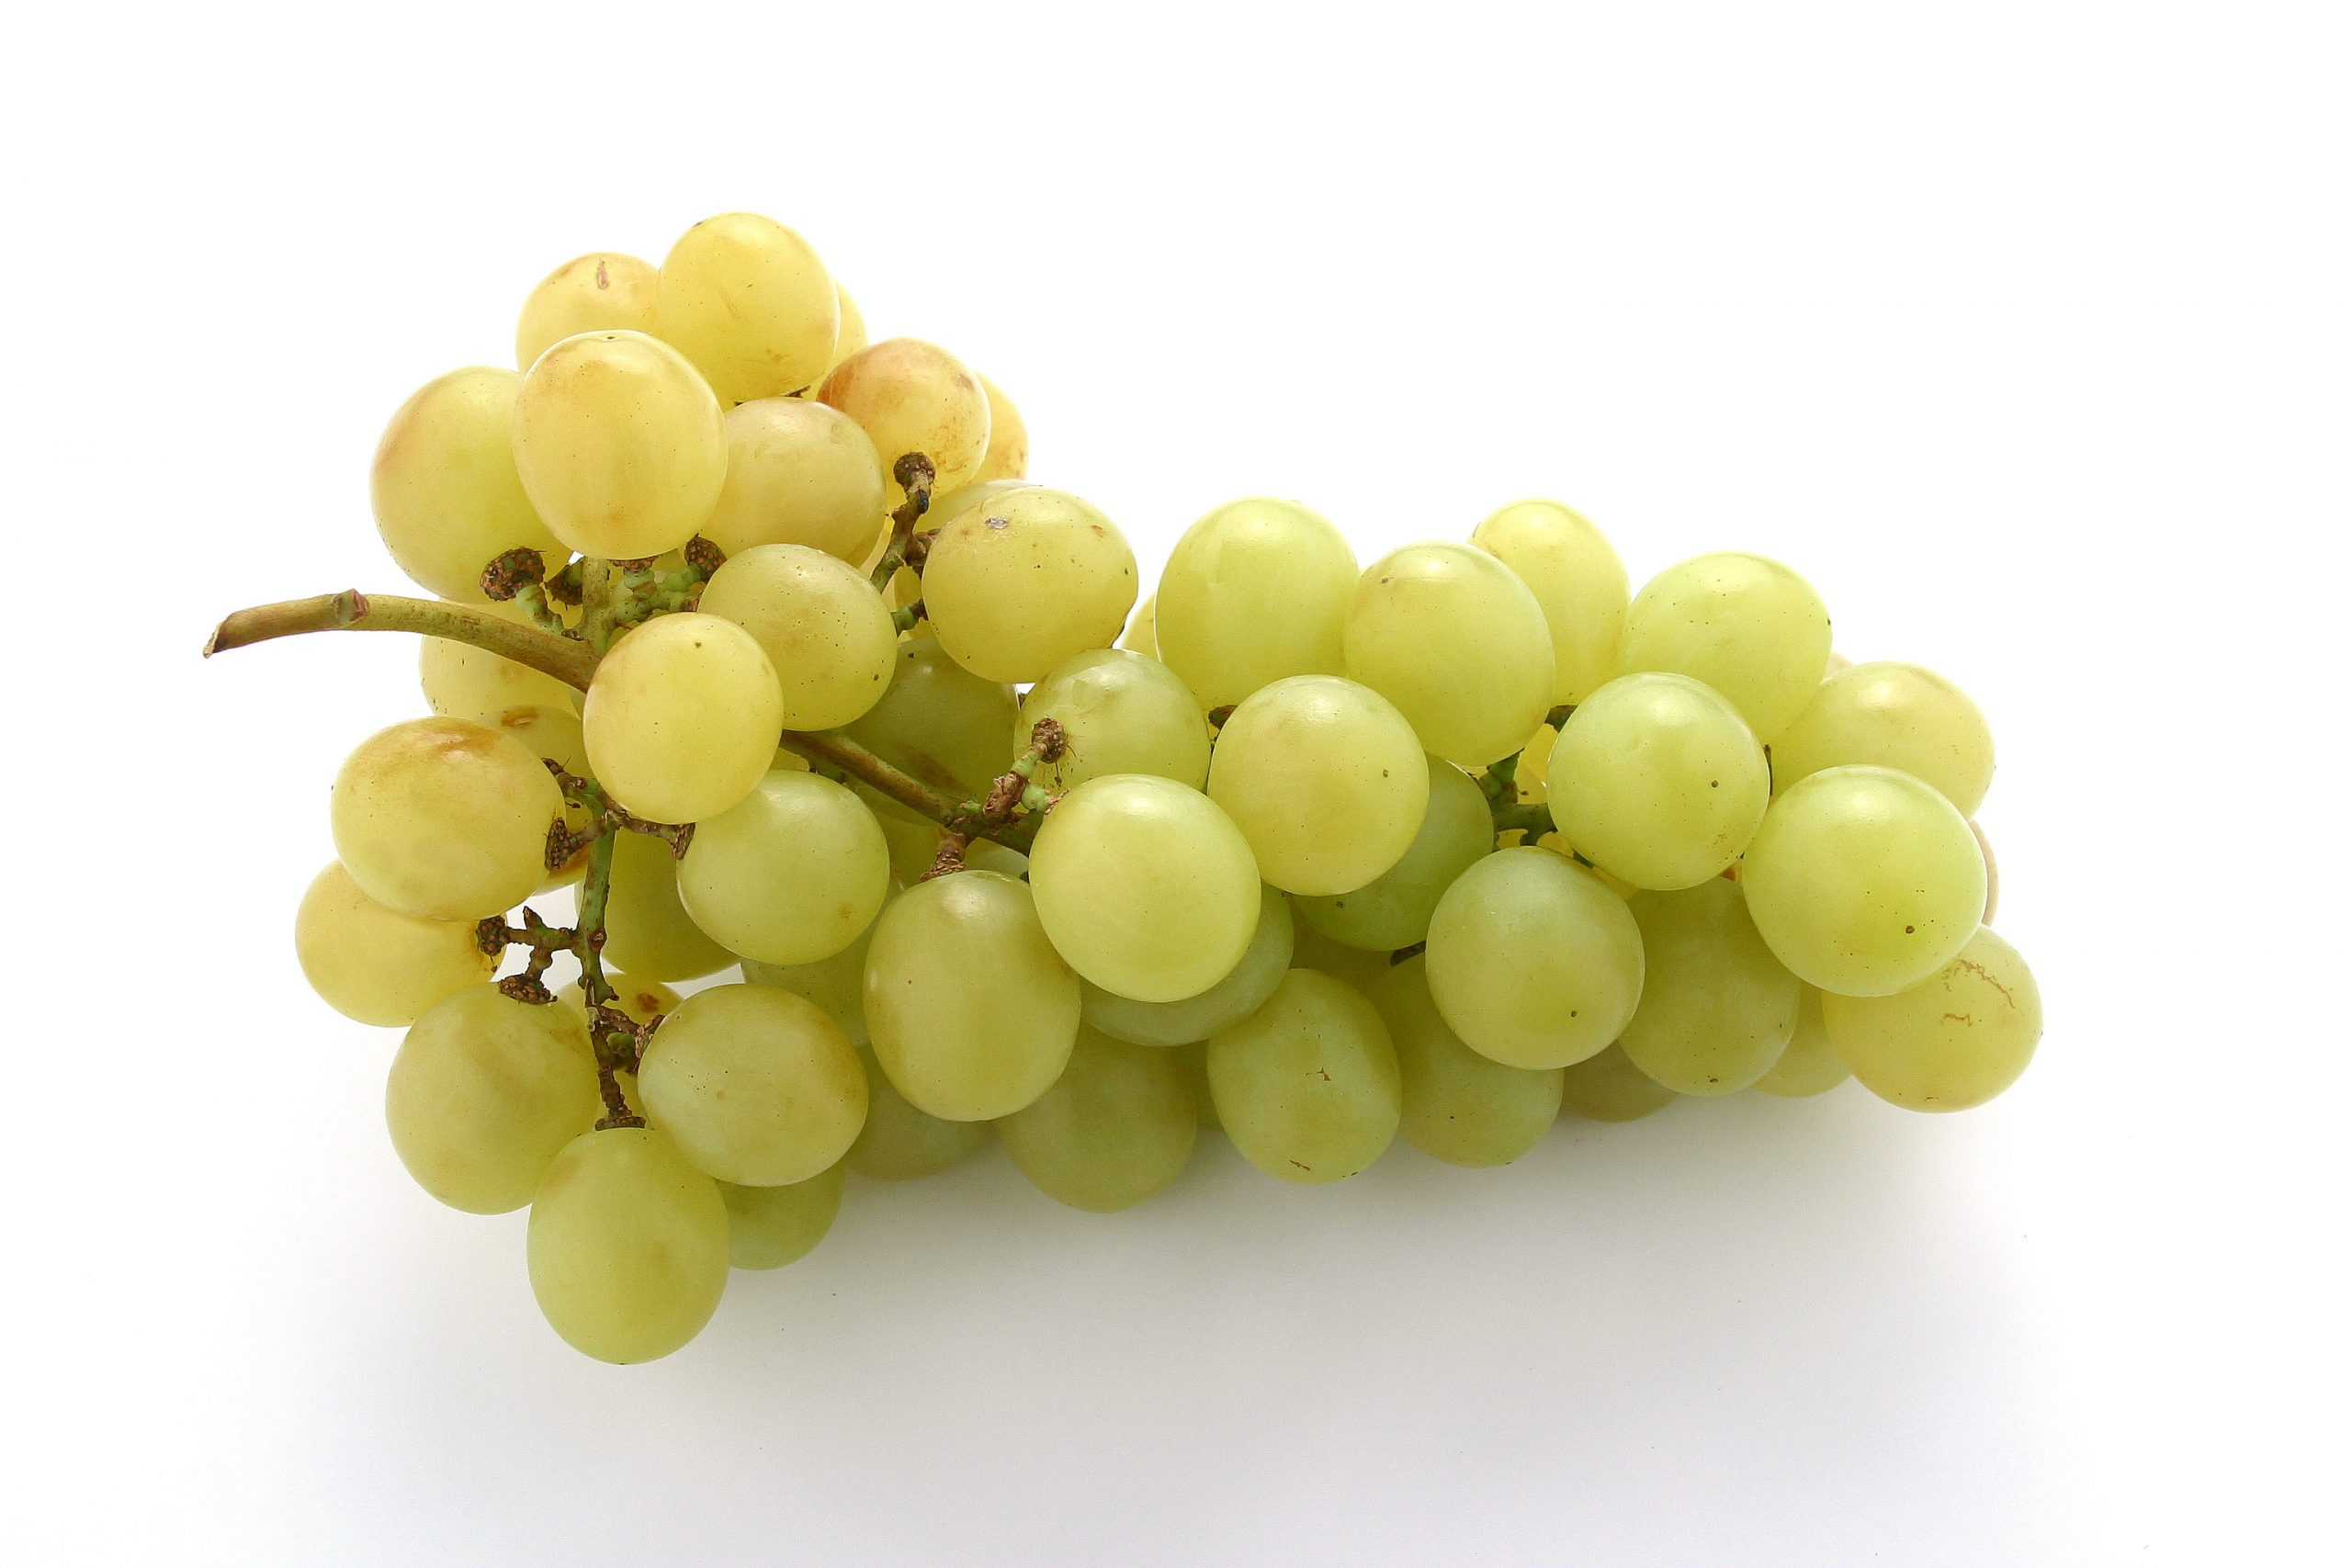 British table grapes are set to become an industry wide initiative by 2018, reducing reliance on imports and significantly decreasing its carbon footprint, Asda said.